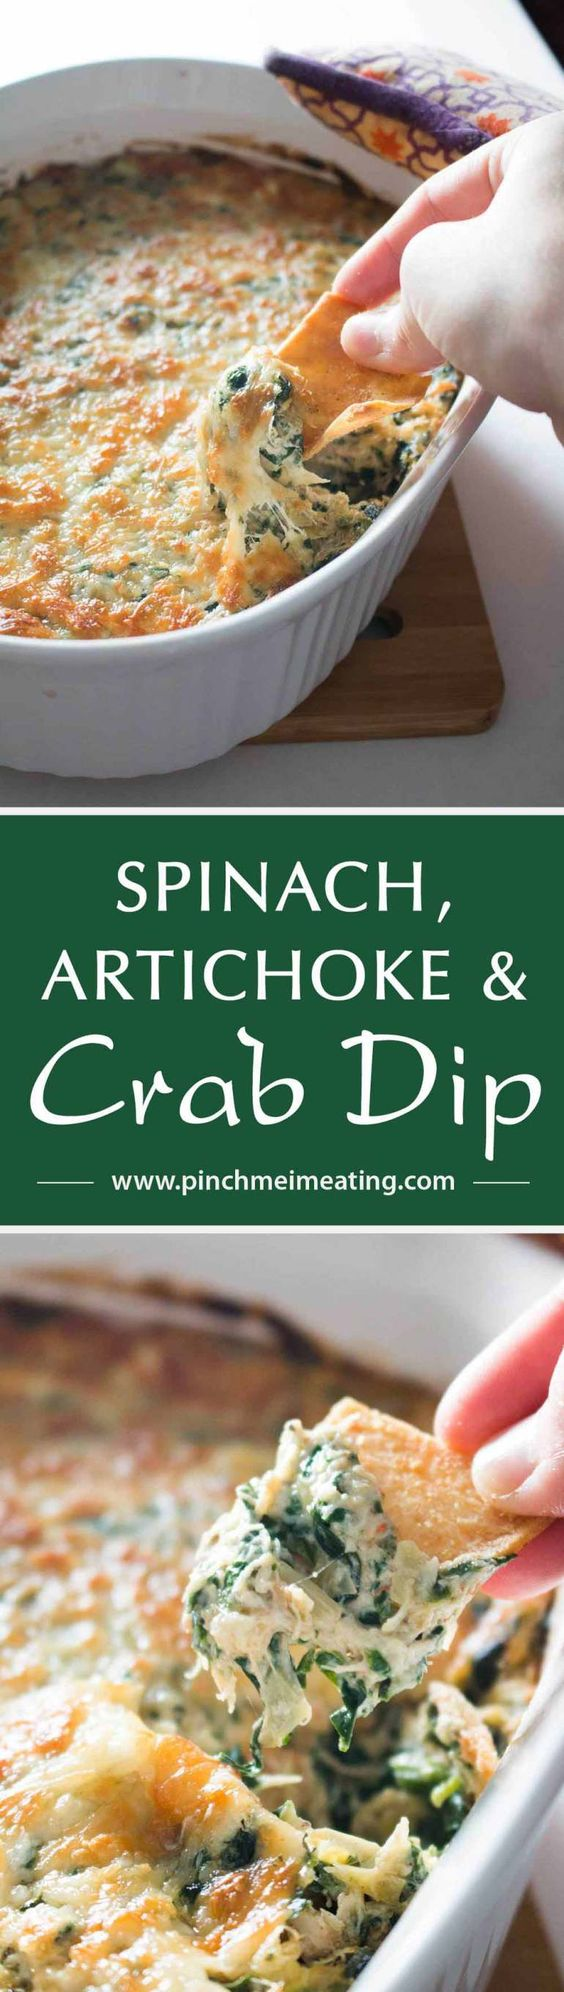 This hot baked spinach, artichoke, and crab dip is the perfect crowd ...